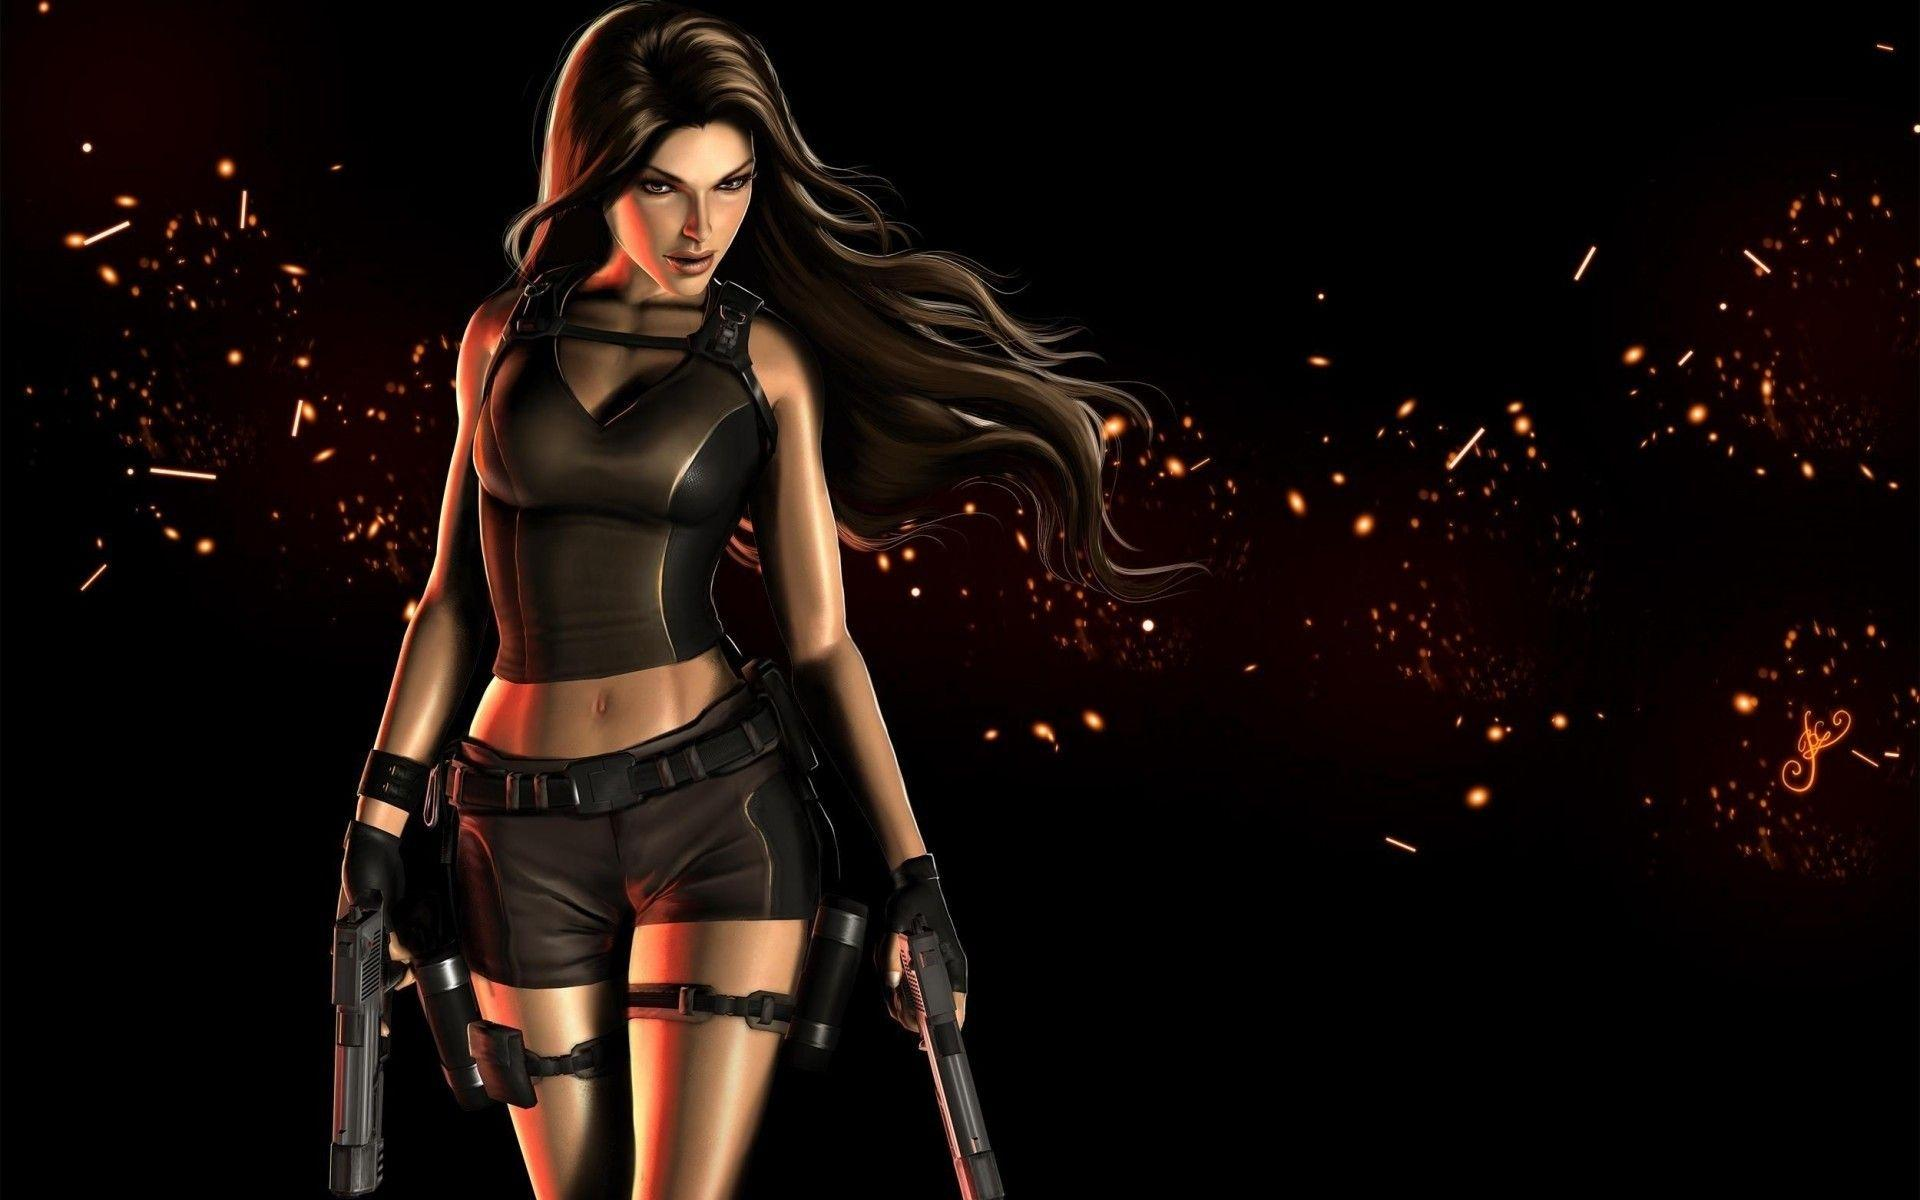 Lara Croft Tomb Raider Cool. Android wallpapers for free